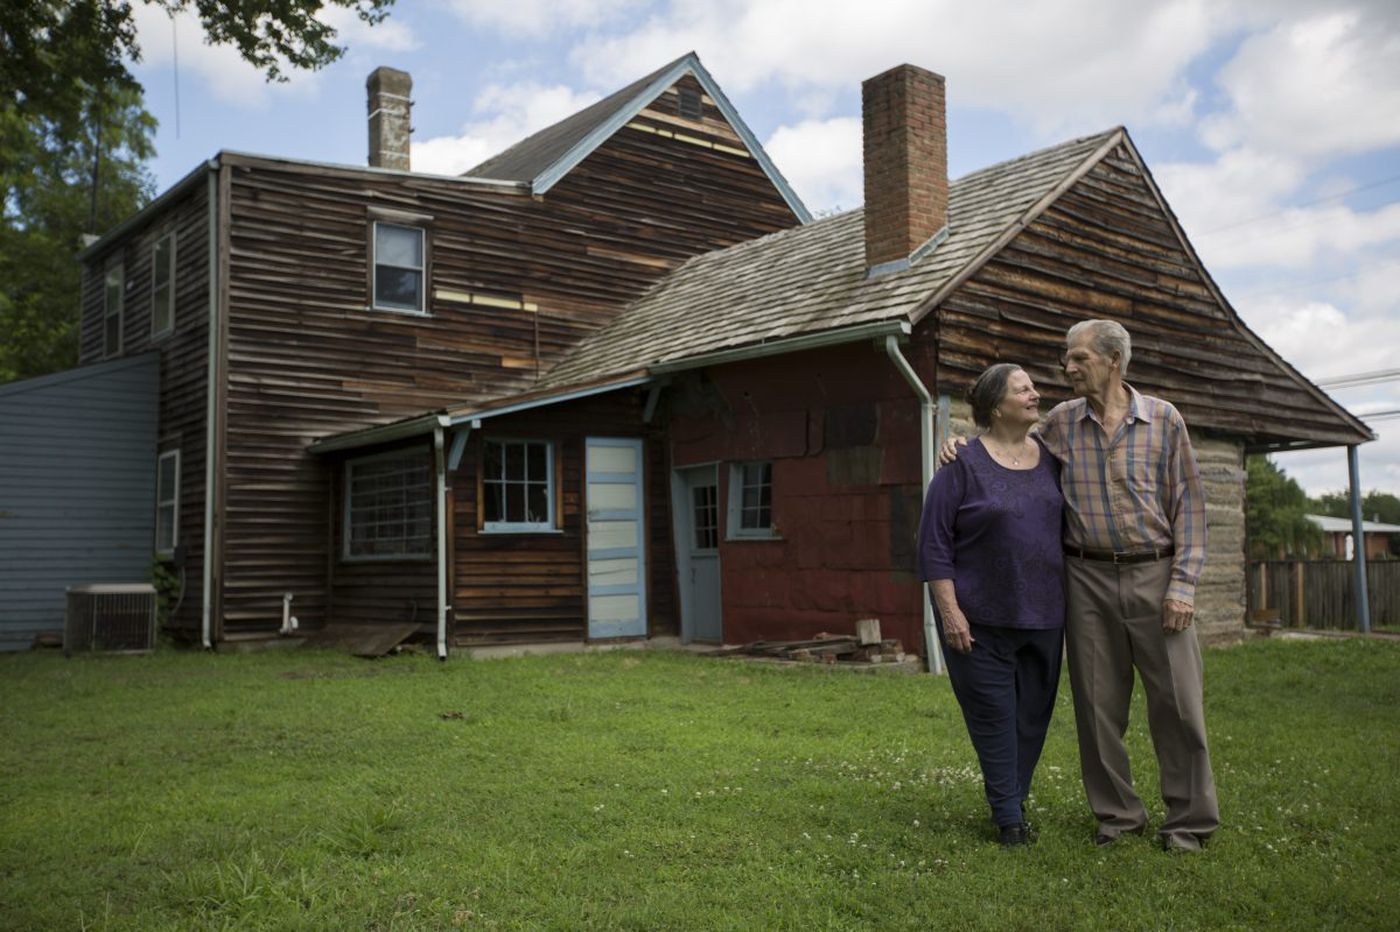 South Jersey log cabin for sale: Nearly 400 years old, asking $2.9M, includes present owners